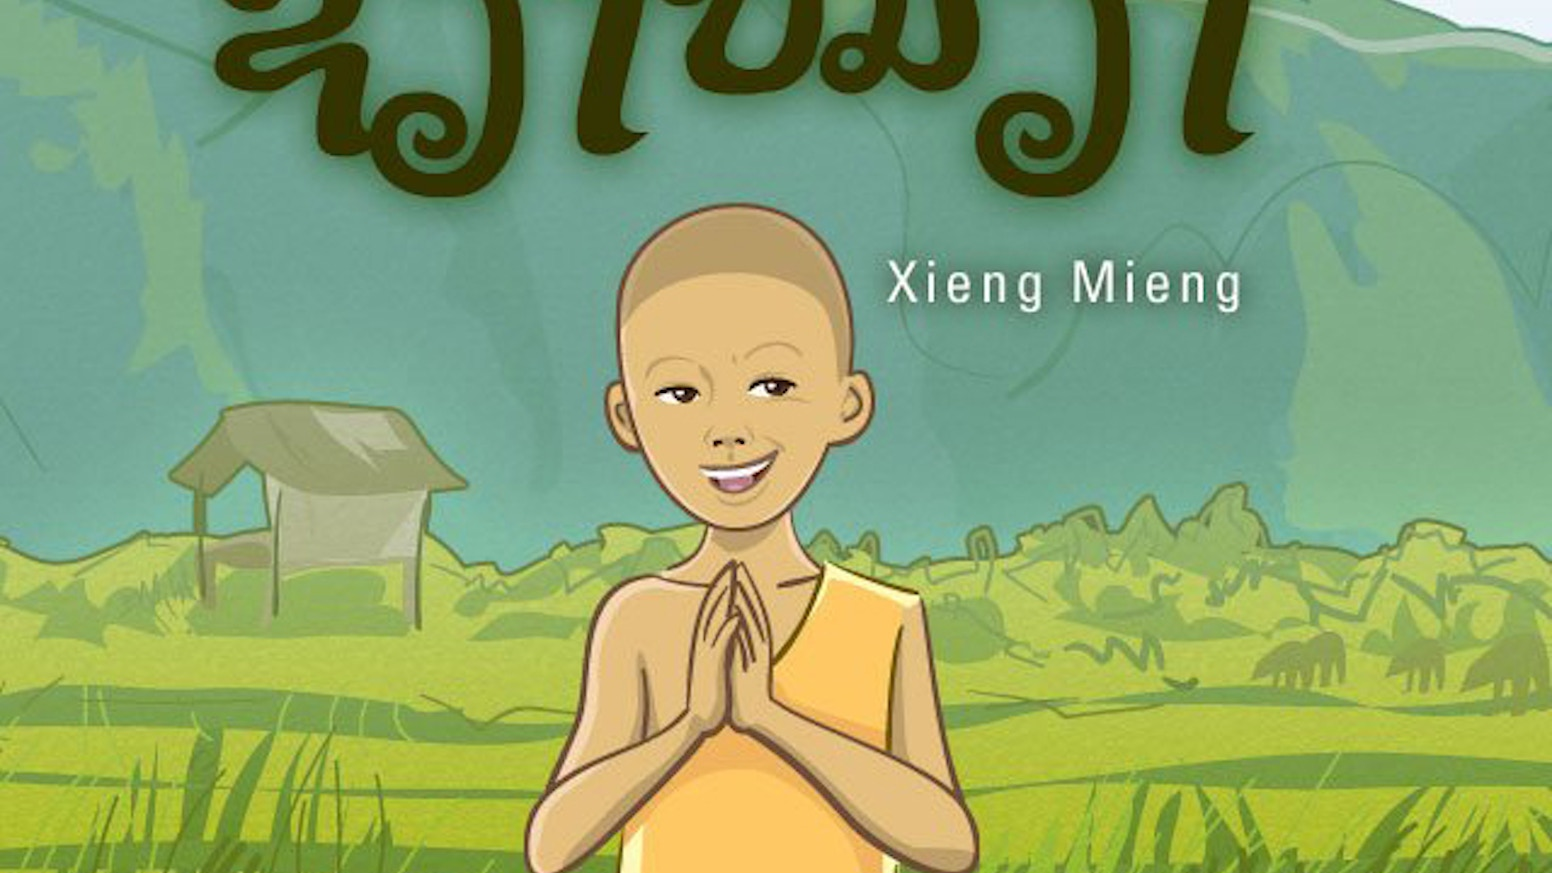 Lao Children's Book: Xieng Mieng Adventures by Nor